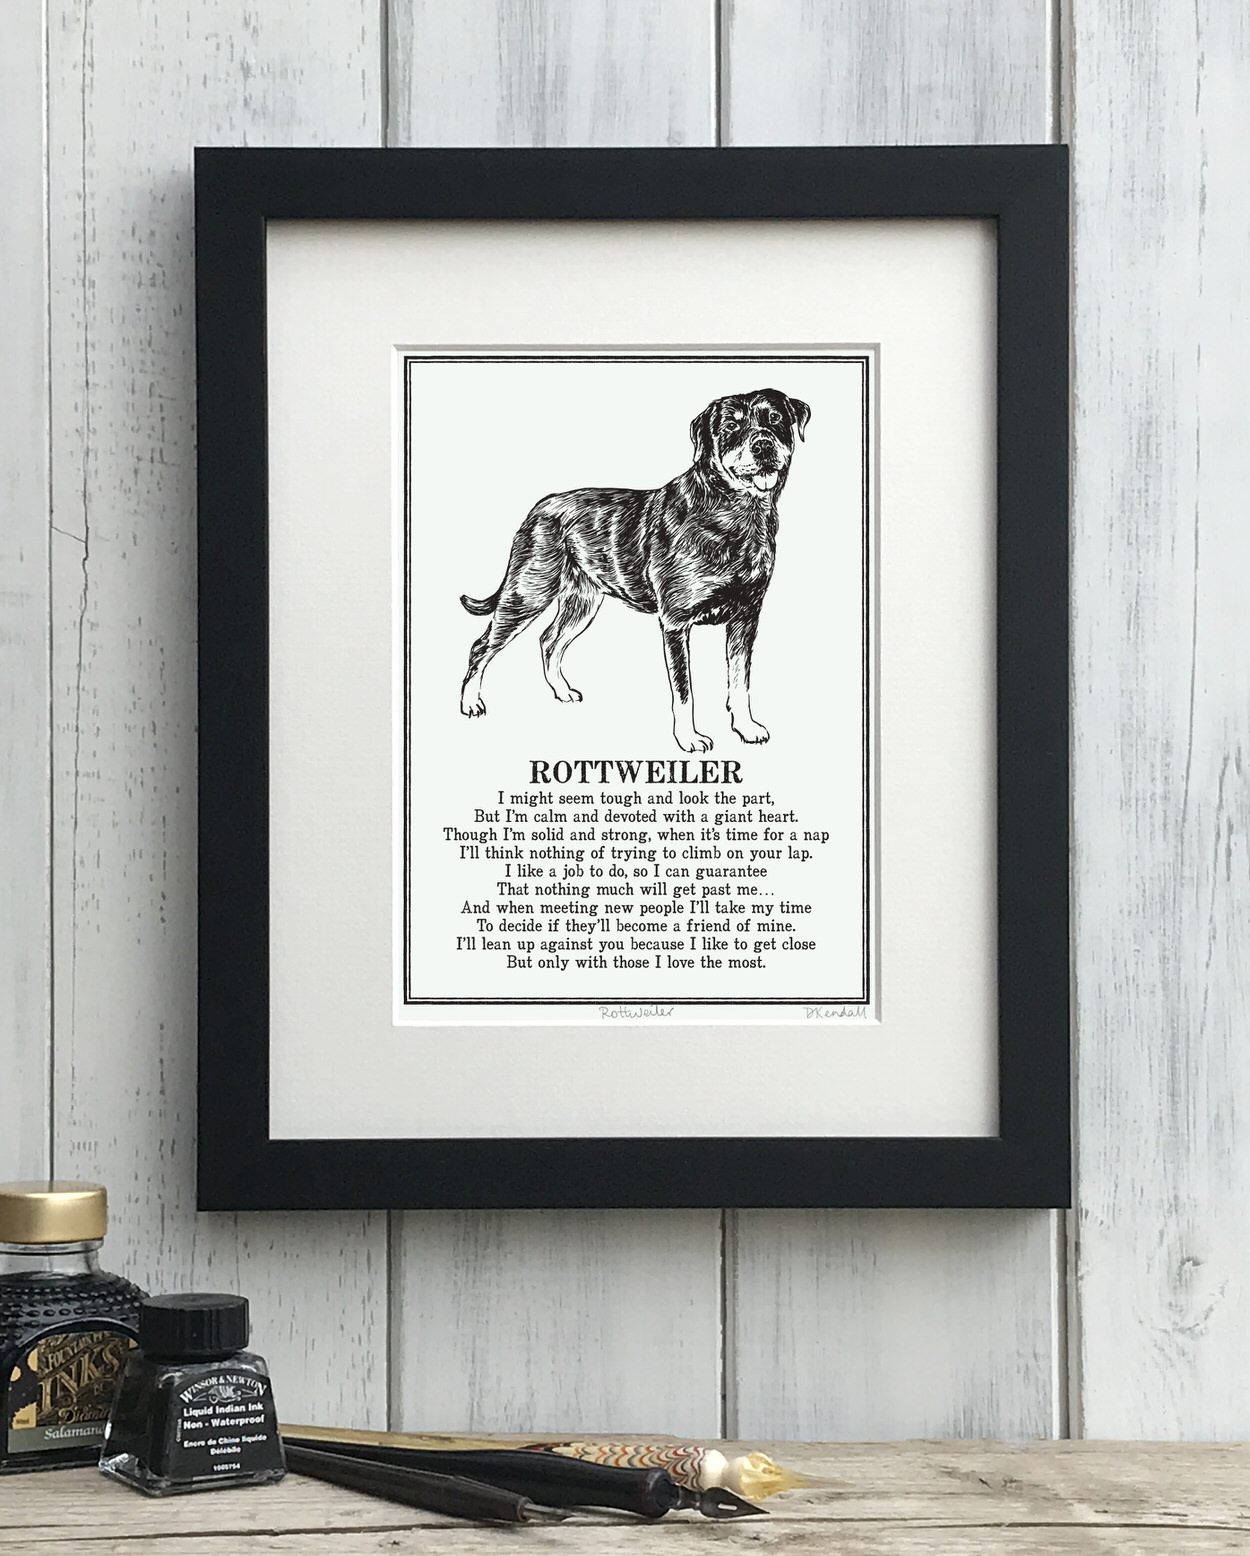 Rottweiler print illustrated poem by The Enlightened Hound